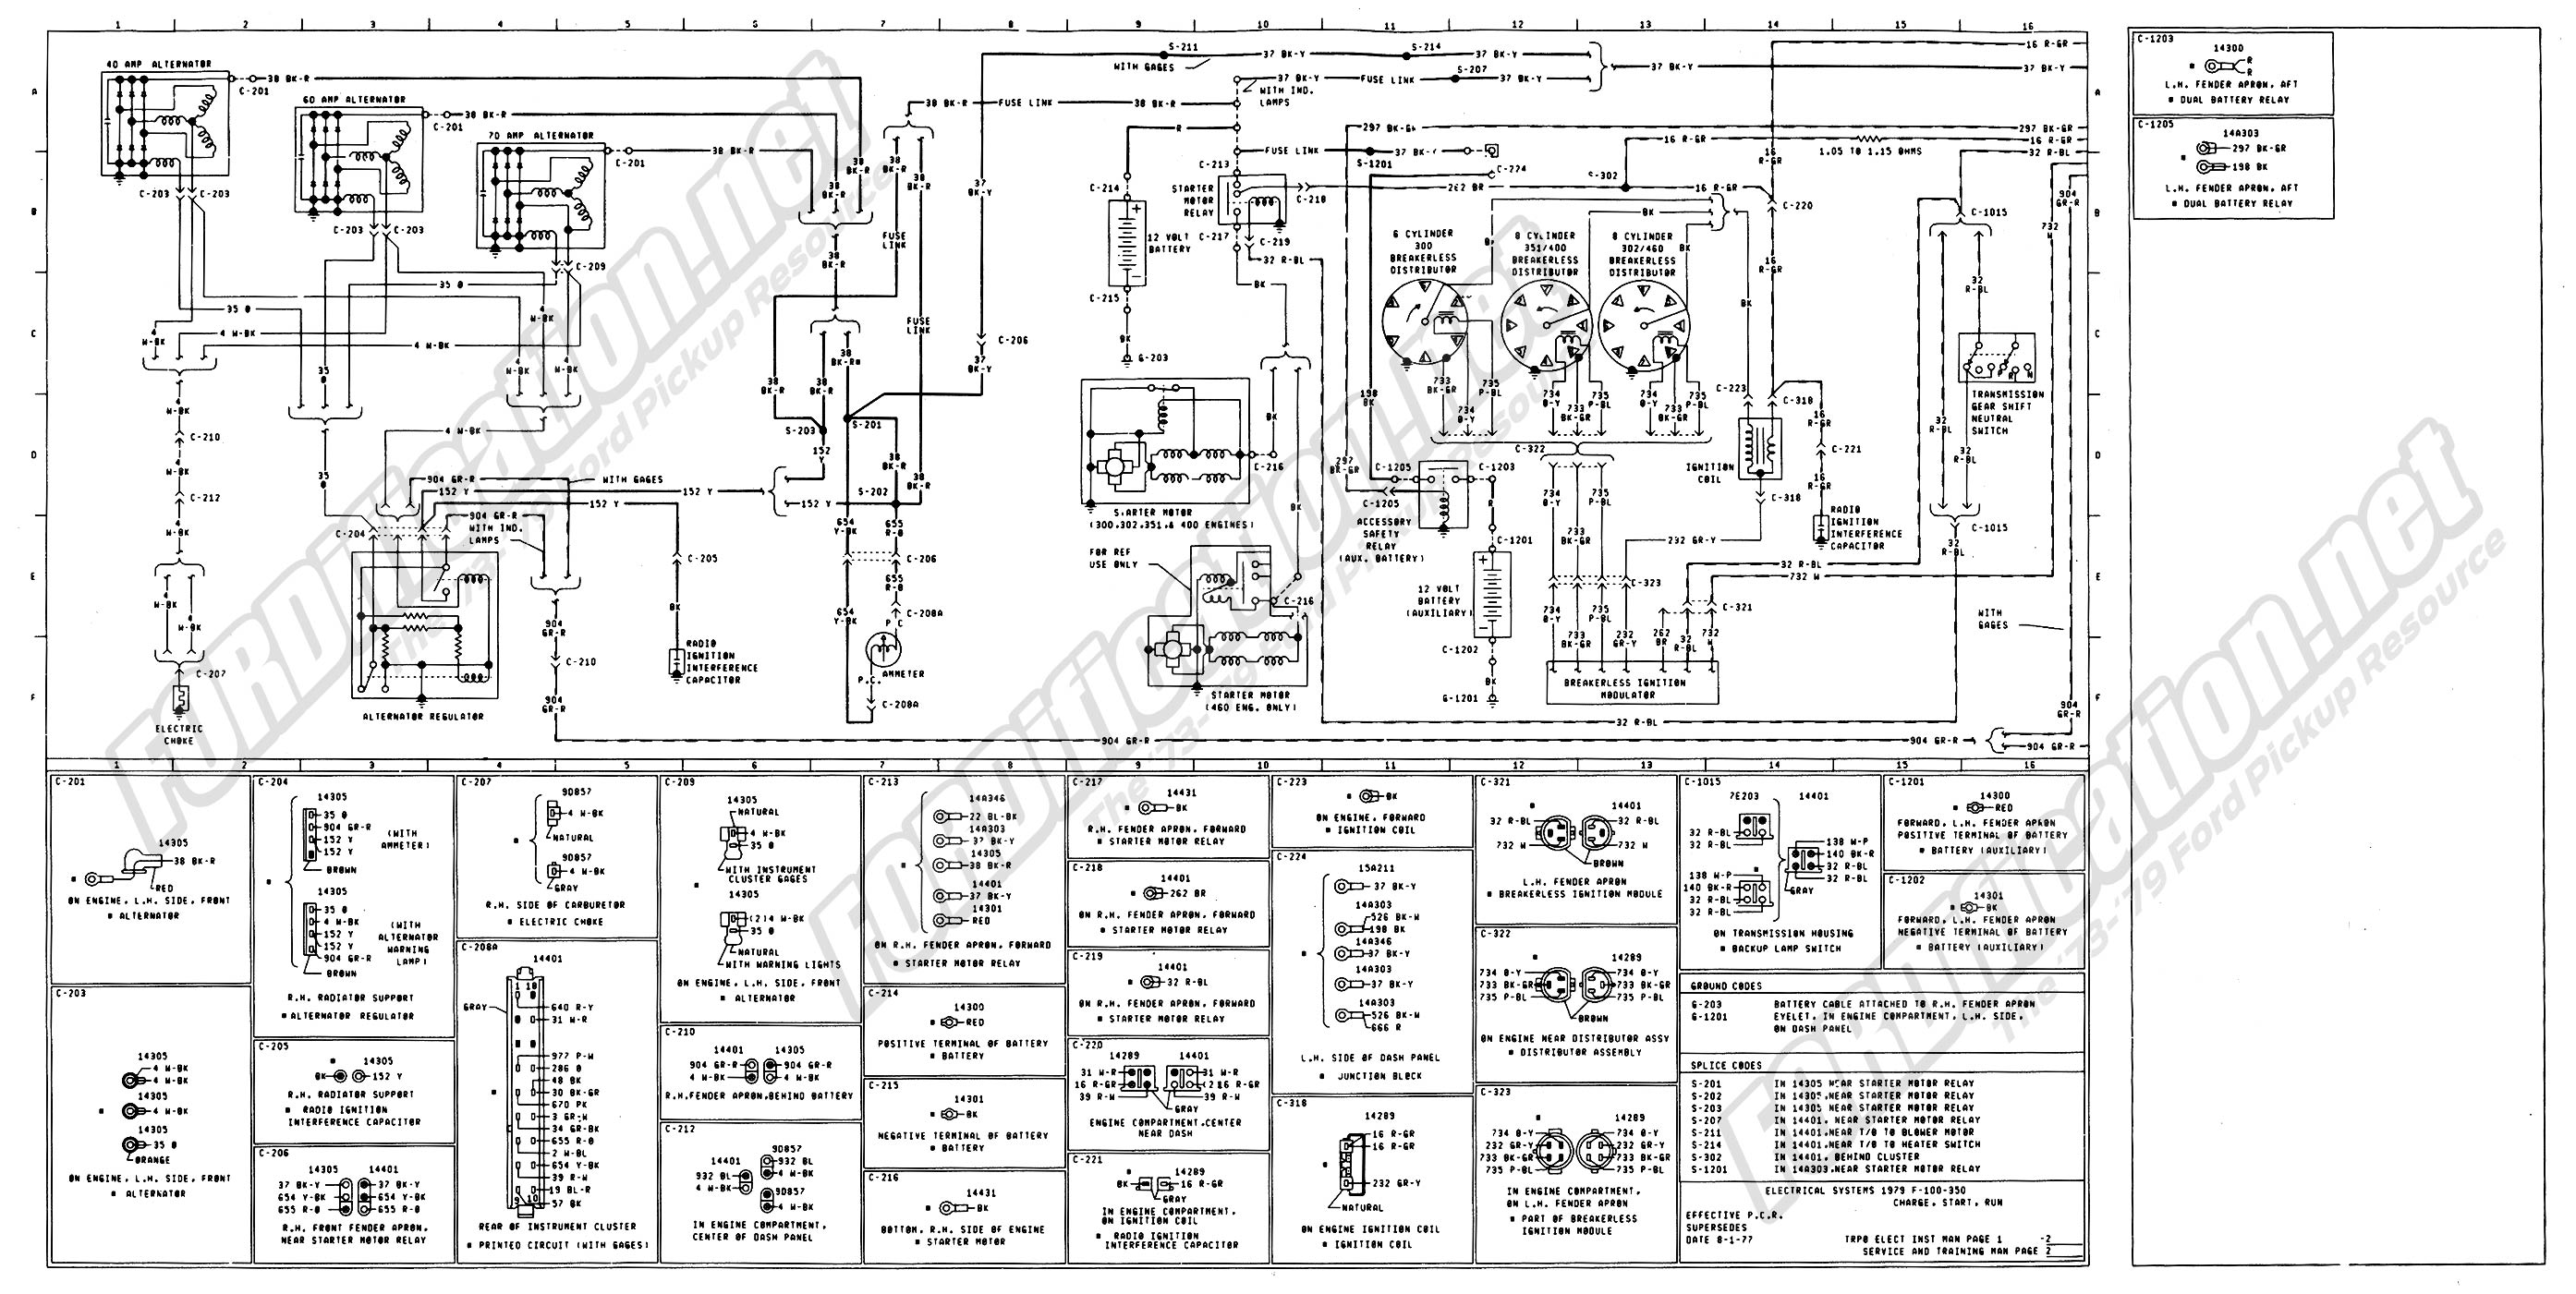 1973 1979 ford truck wiring diagrams schematics fordification net rh fordification net 1979 wiring diagram 1979 mgb wiring diagram